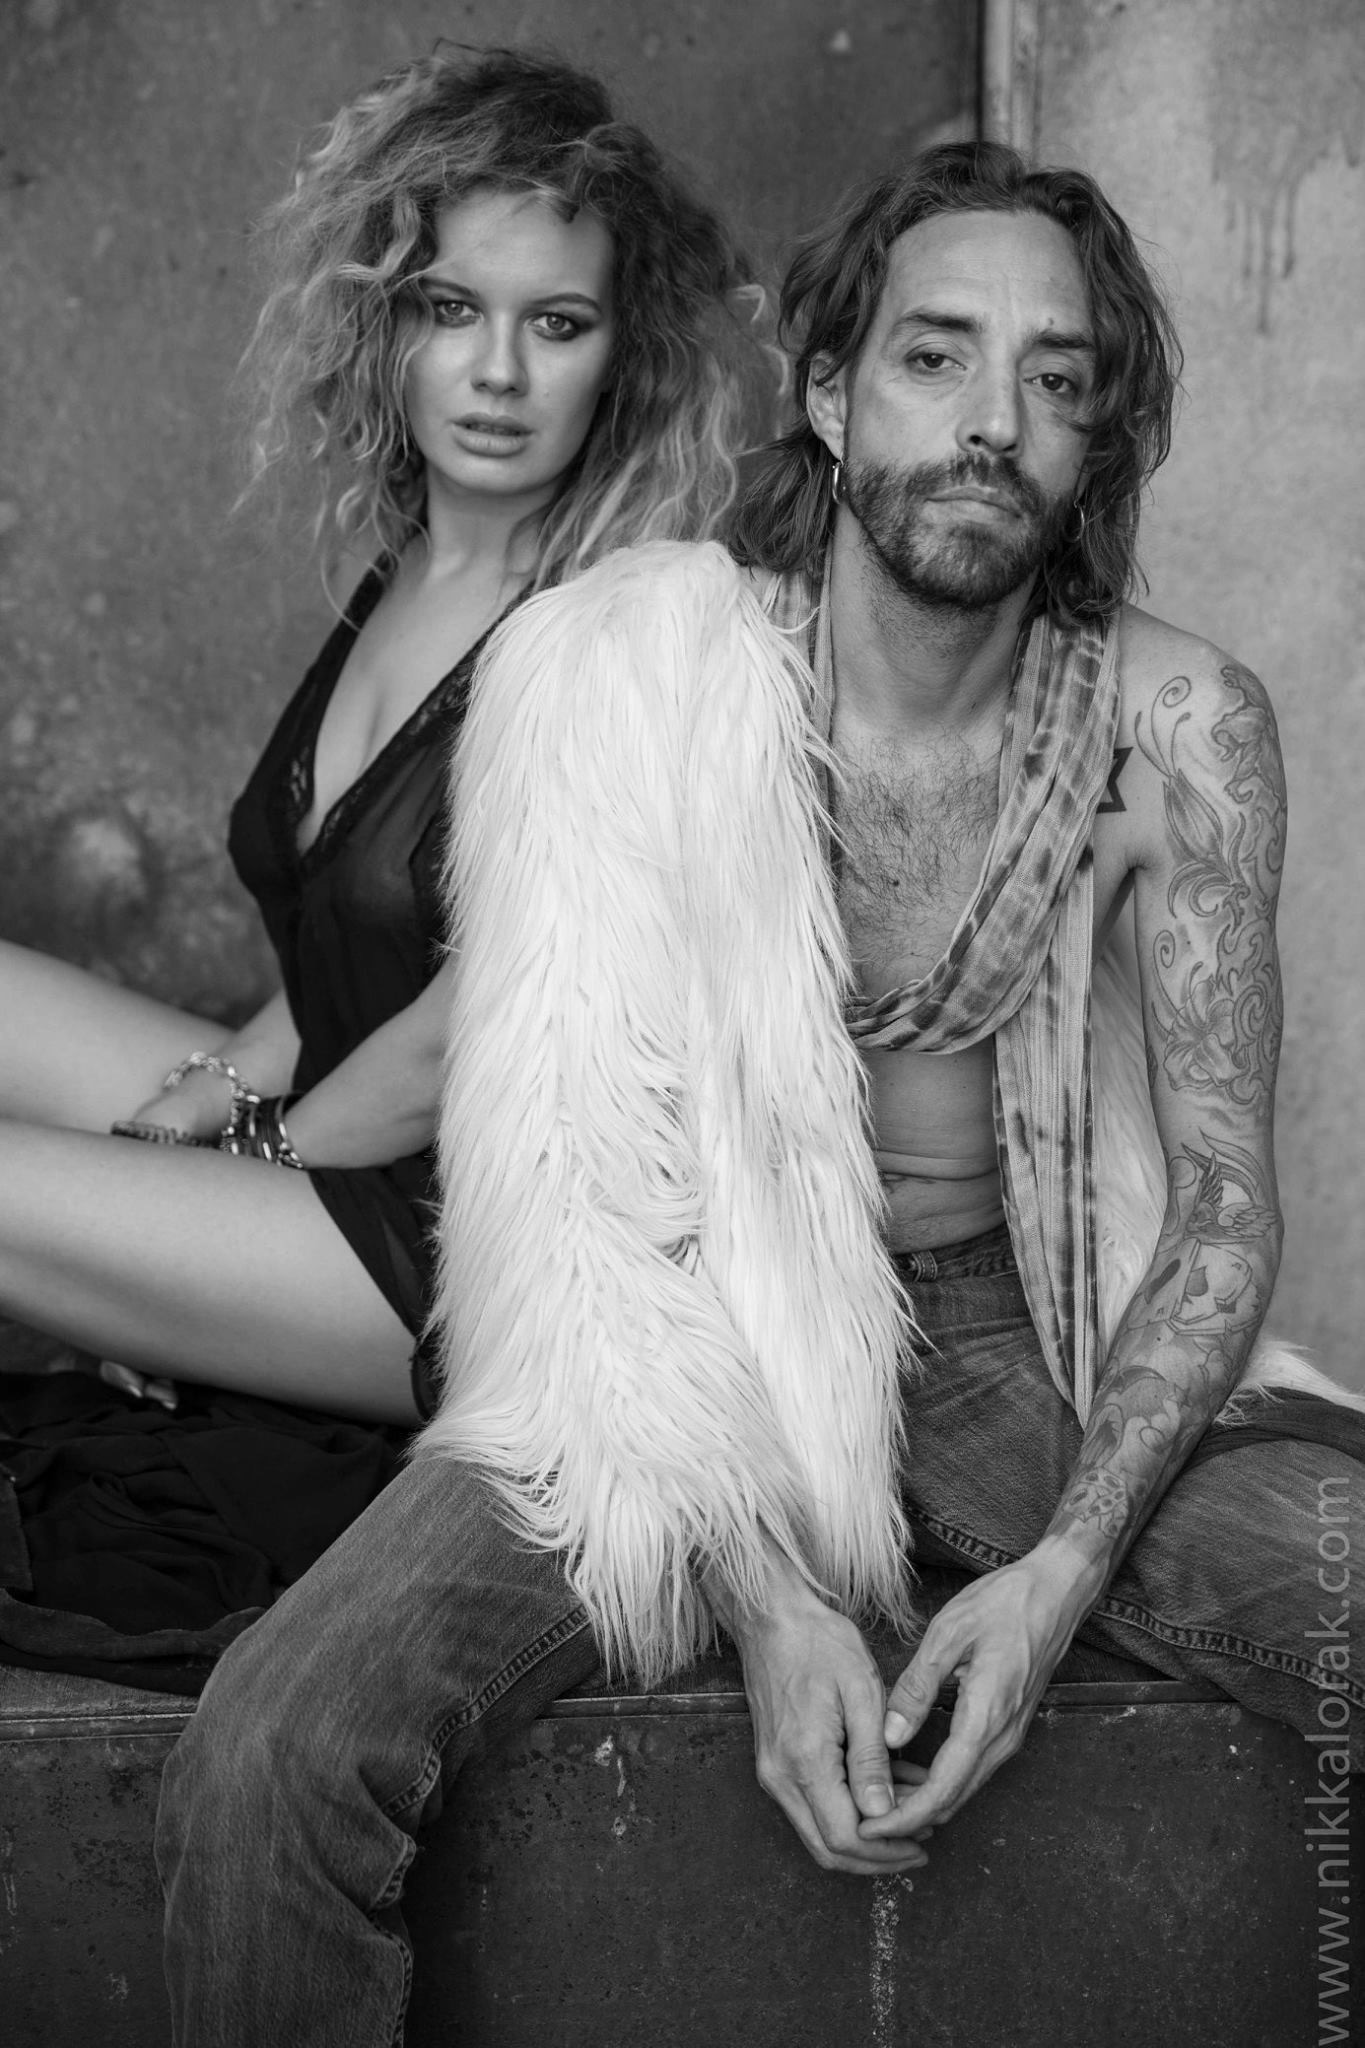 """""""Sex-Drugs-Rock'n'roll"""" - Nikka Lorak's Personal photography exhibition. Coming up in 2019."""